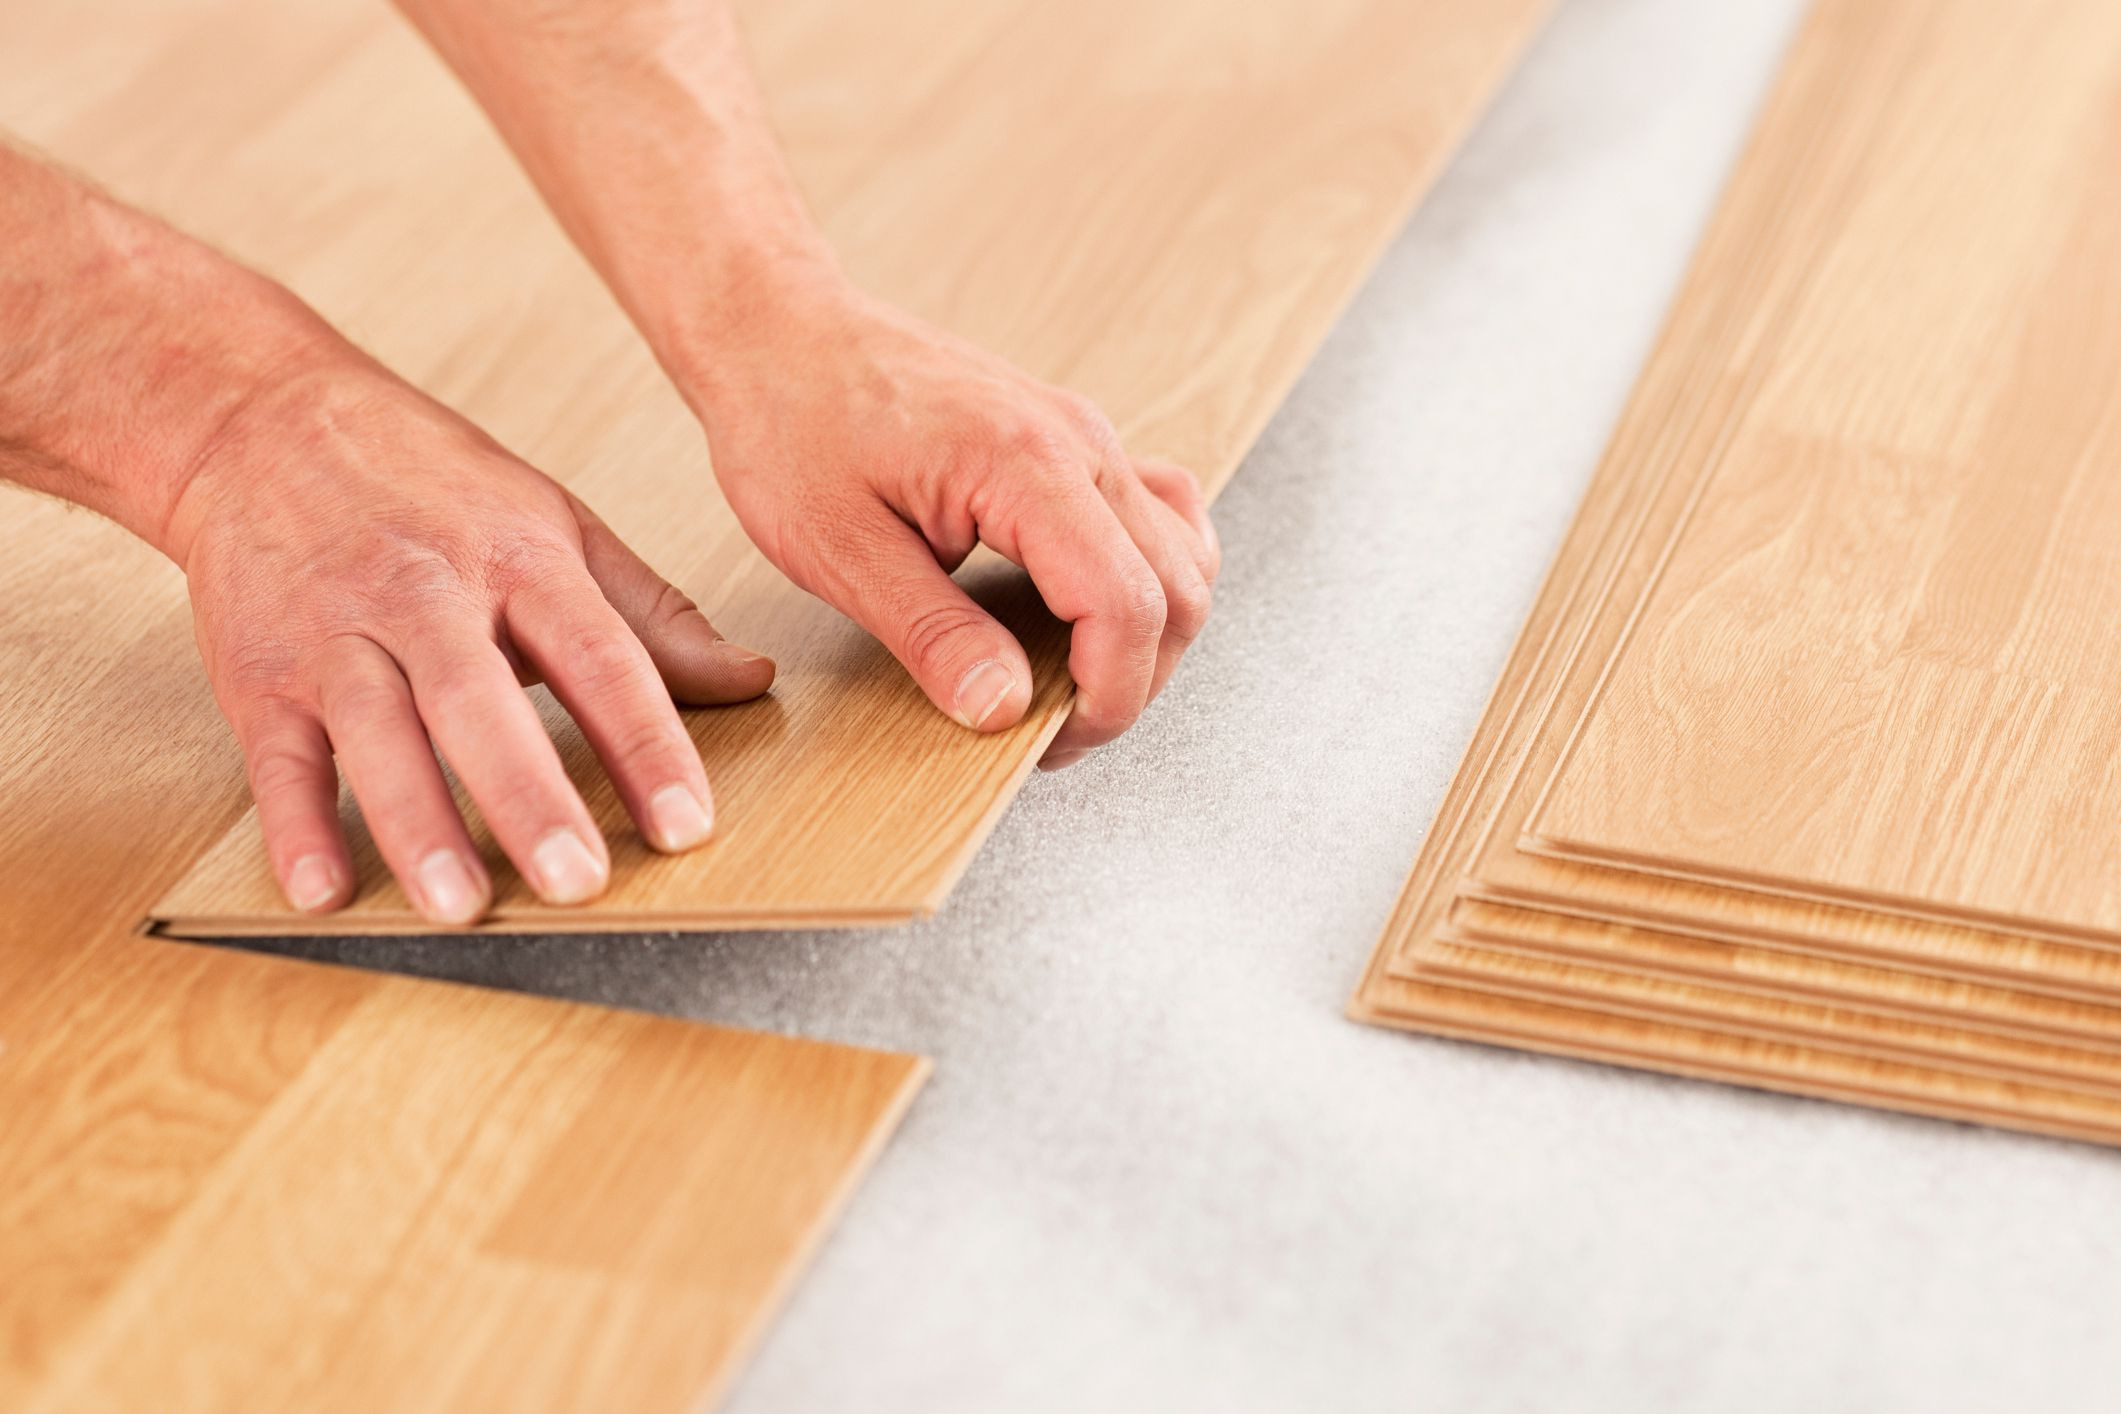 installing floating engineered hardwood flooring over concrete of laminate underlayment pros and cons within laminate floor install gettyimages 154961561 588816495f9b58bdb3da1a02